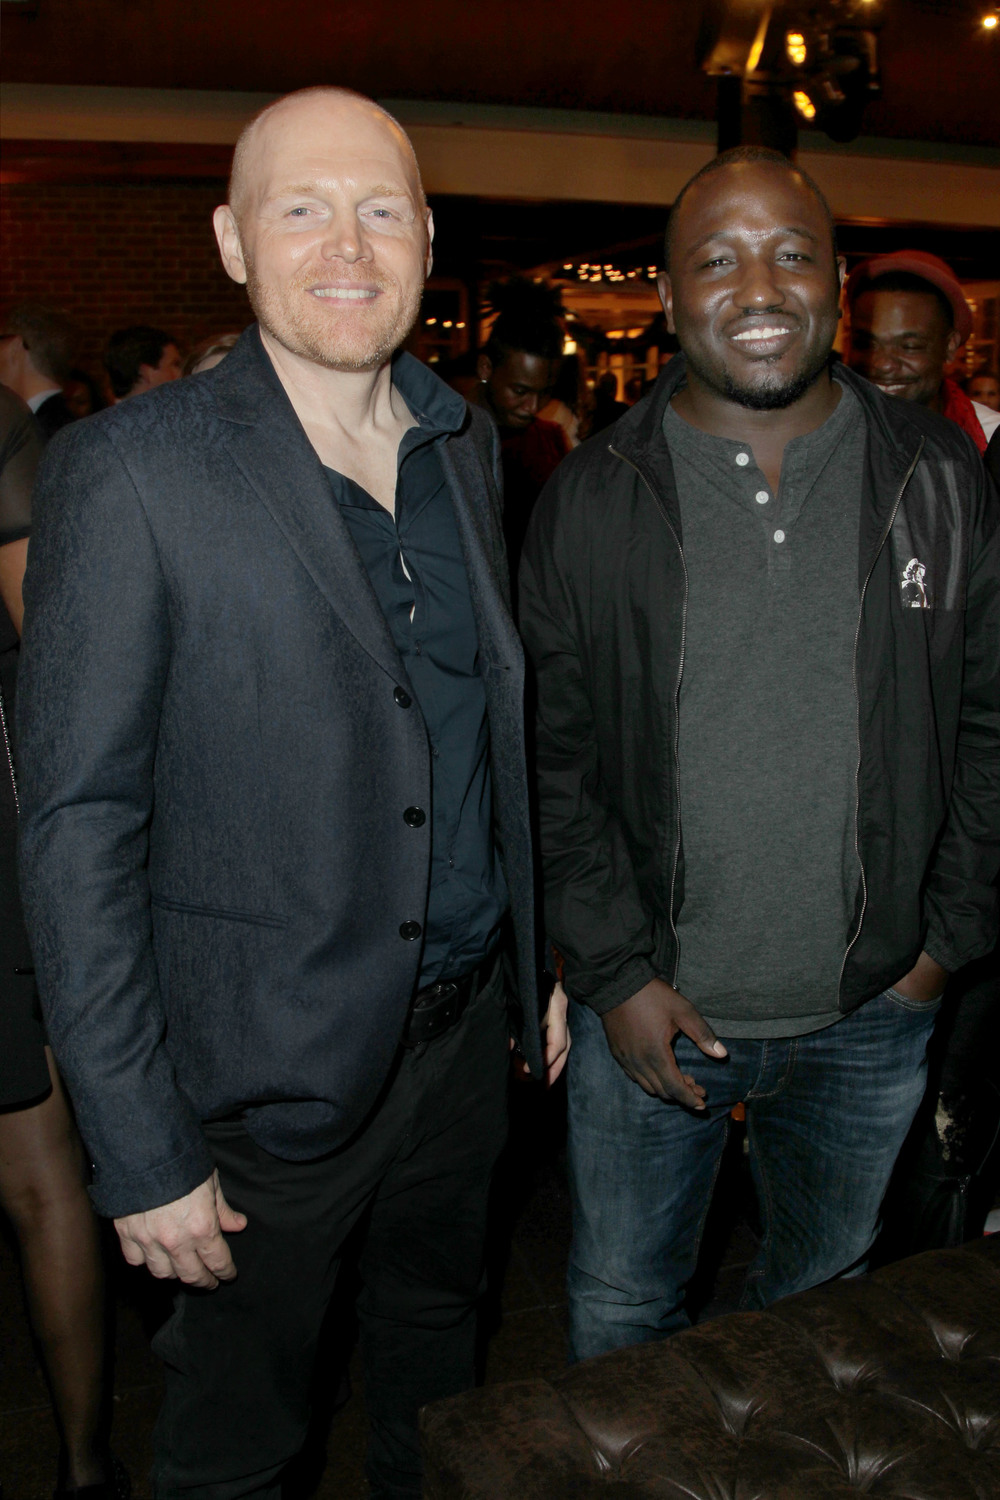 Bill Burr, Hannibal Buress